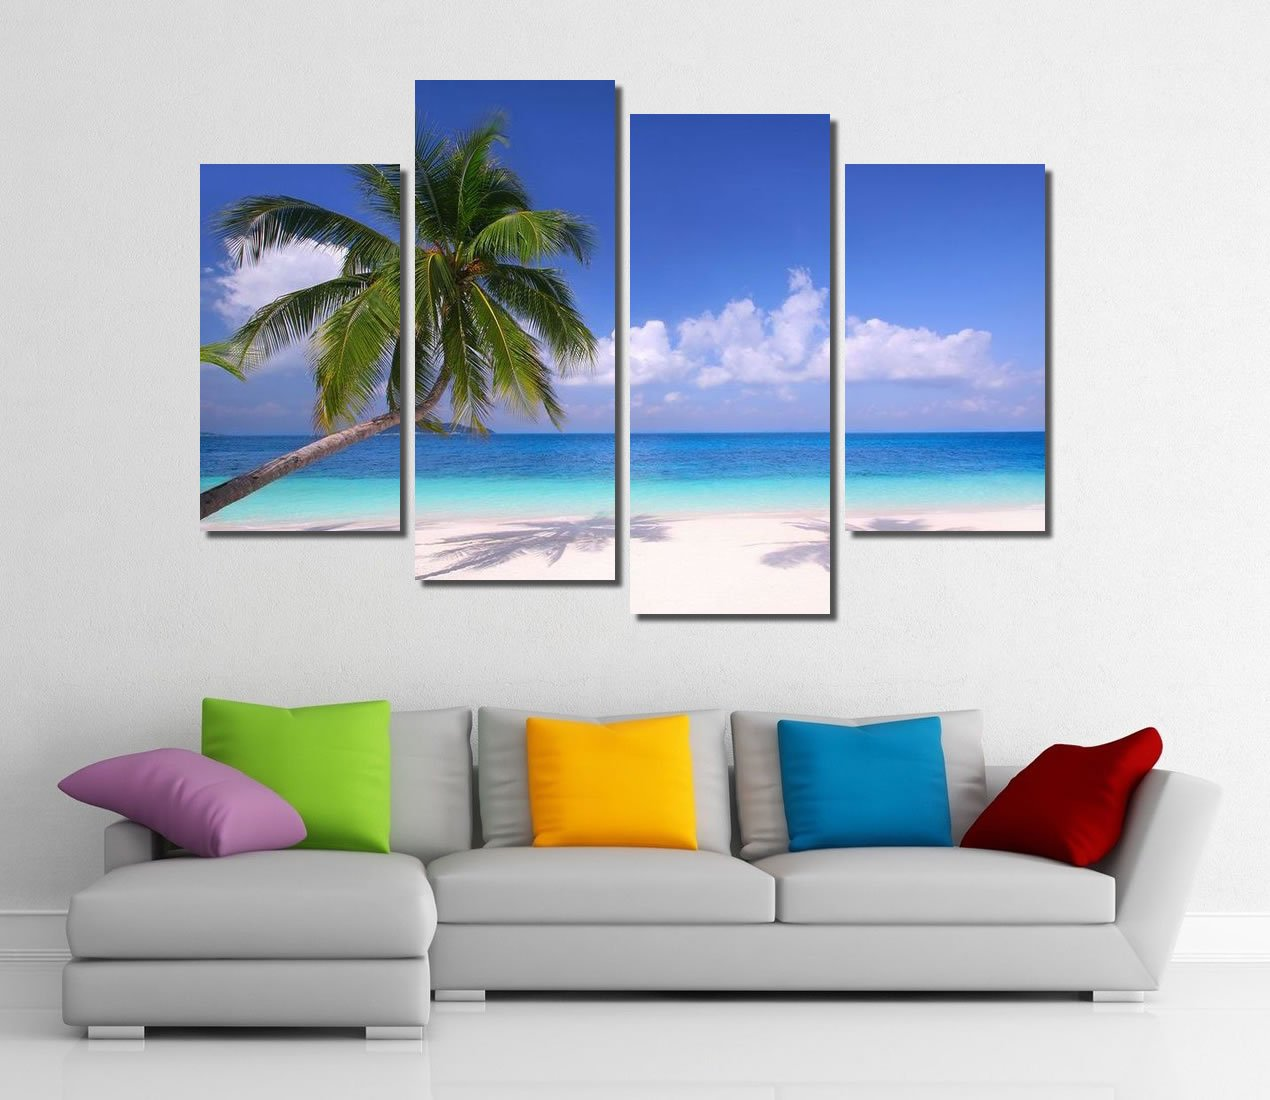 Picture Sensations Framed 4-Panel canvas Art Print, Palm Beach Torpical ocean White sand - 48''X32'' by Picture Sensations